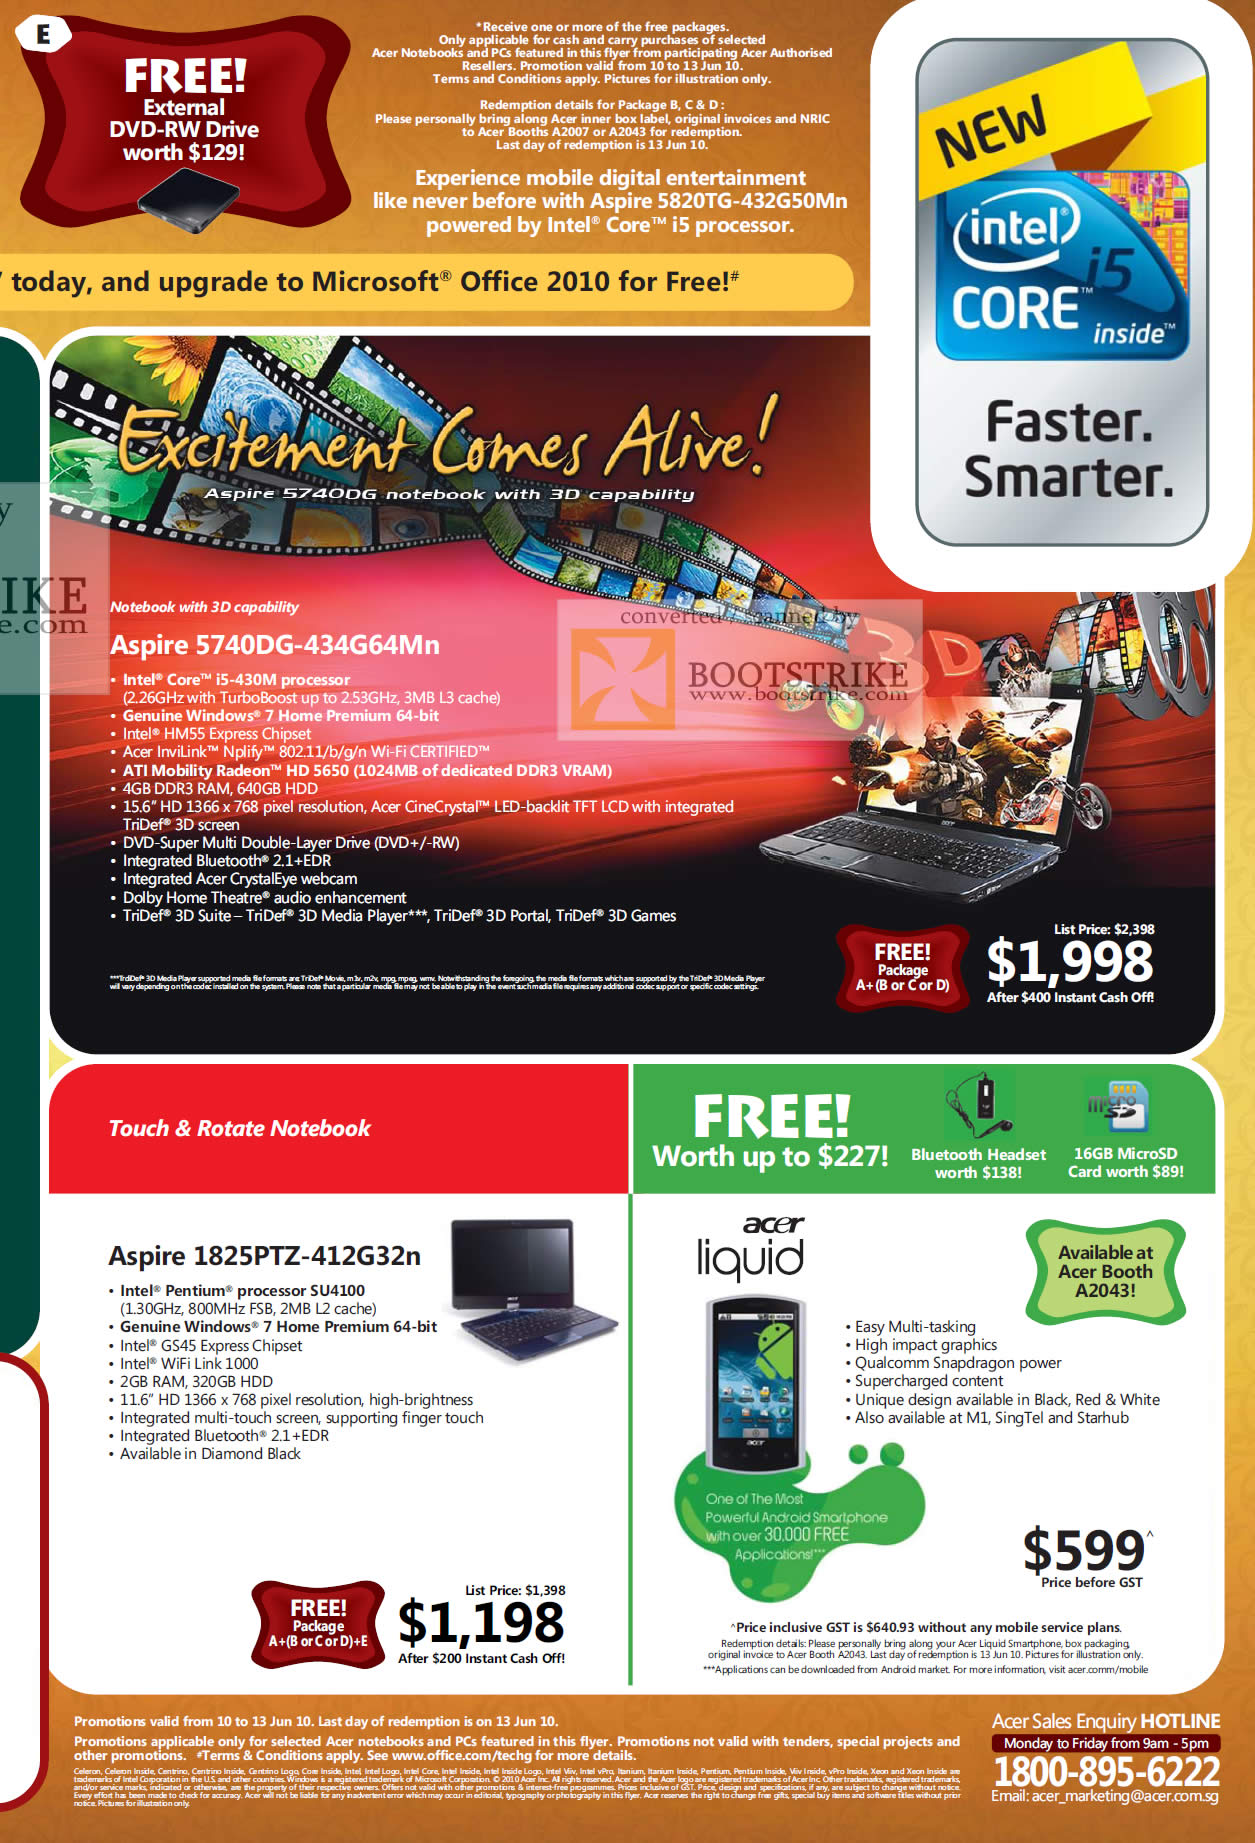 PC Show 2010 price list image brochure of Acer 3D Notebook Aspire 5749DG Touch Rotate 1825PTZ Liquid Android Smartphone